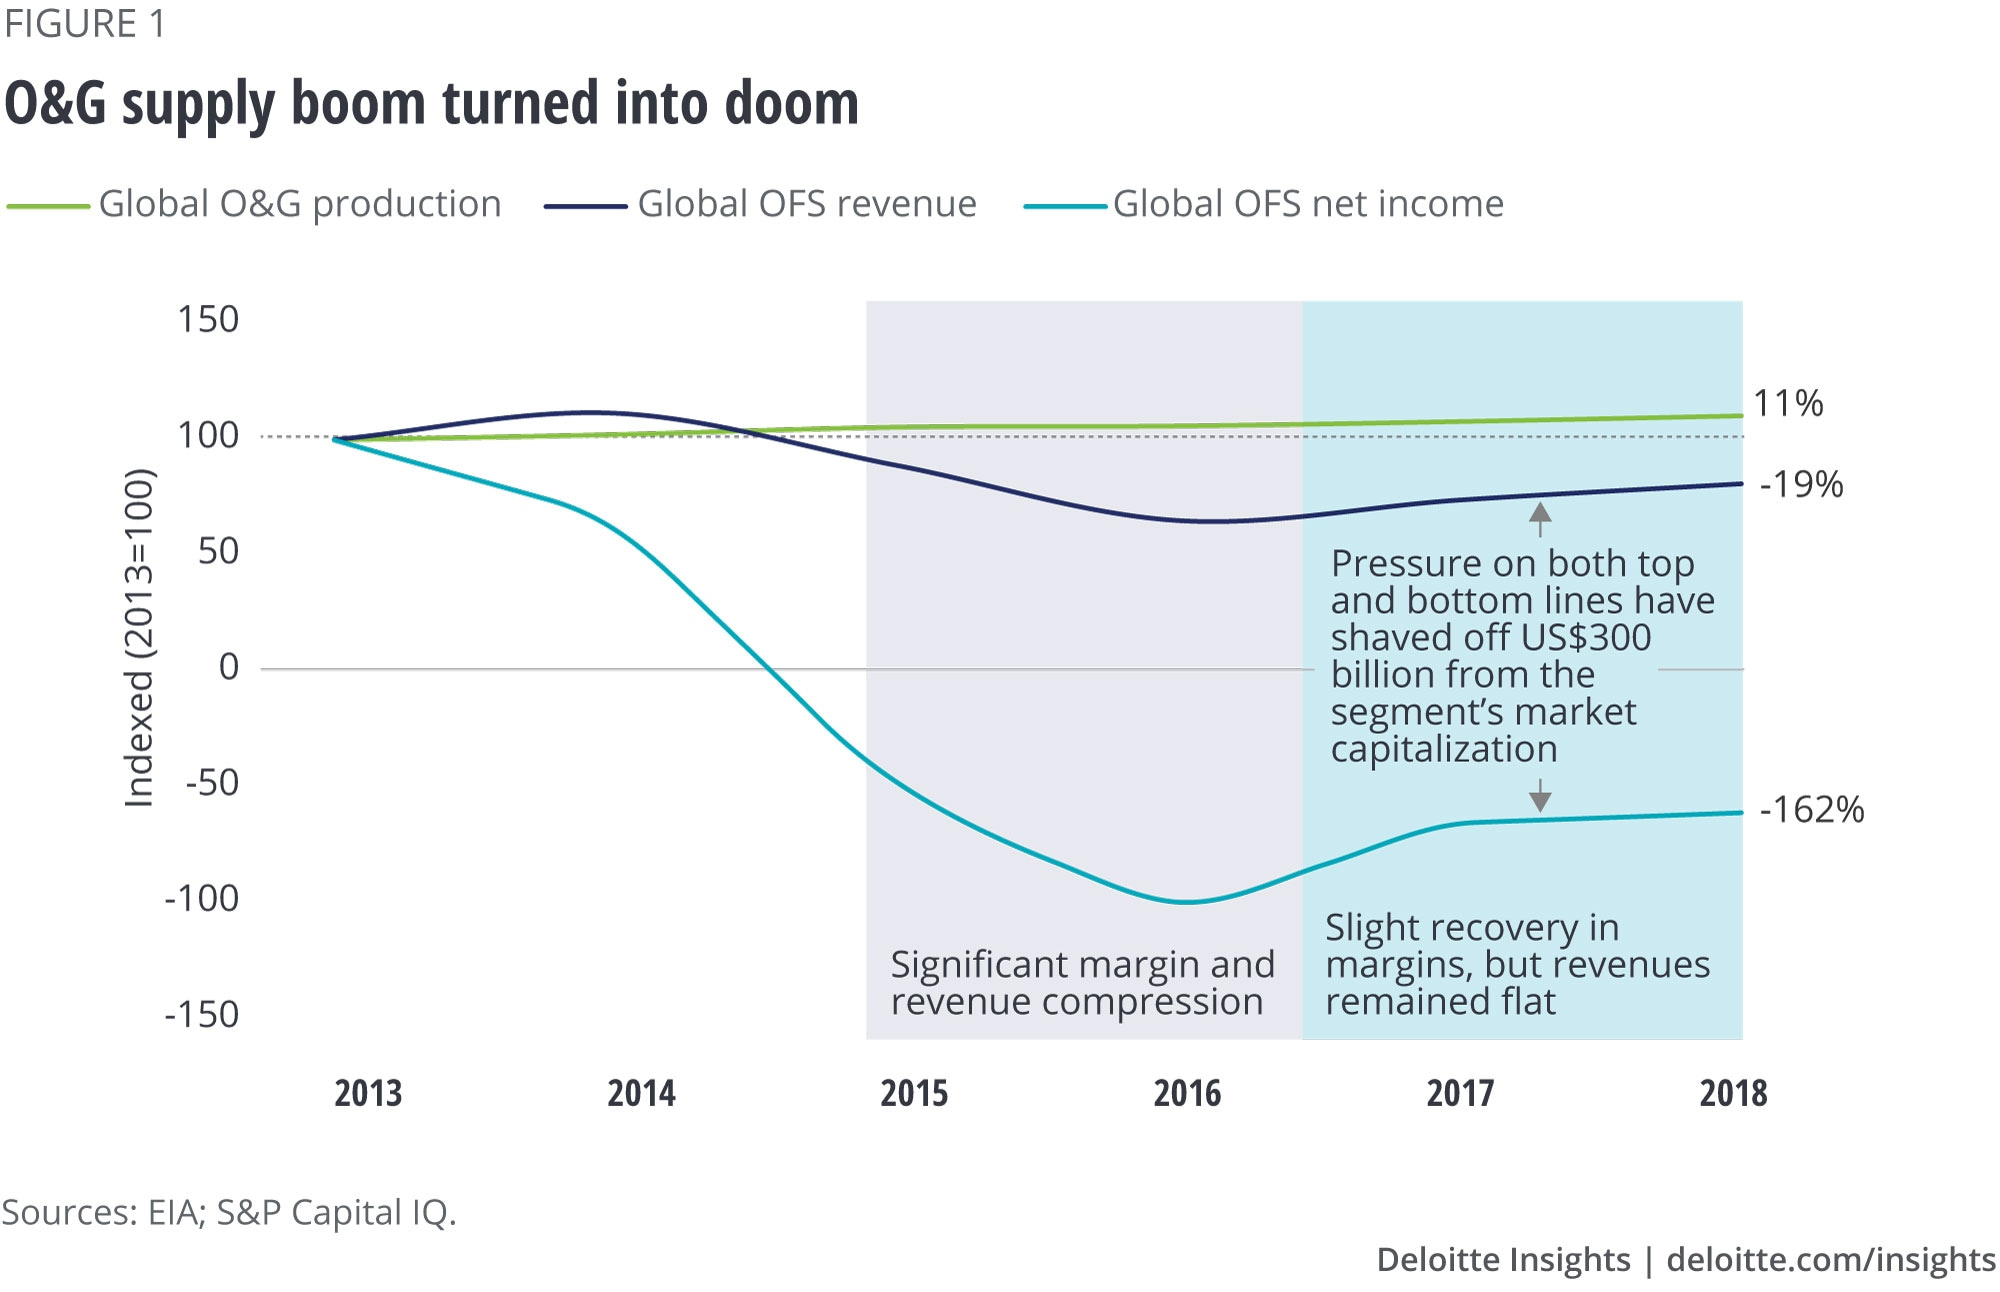 Oilfield services companies and the oil & gas downturn